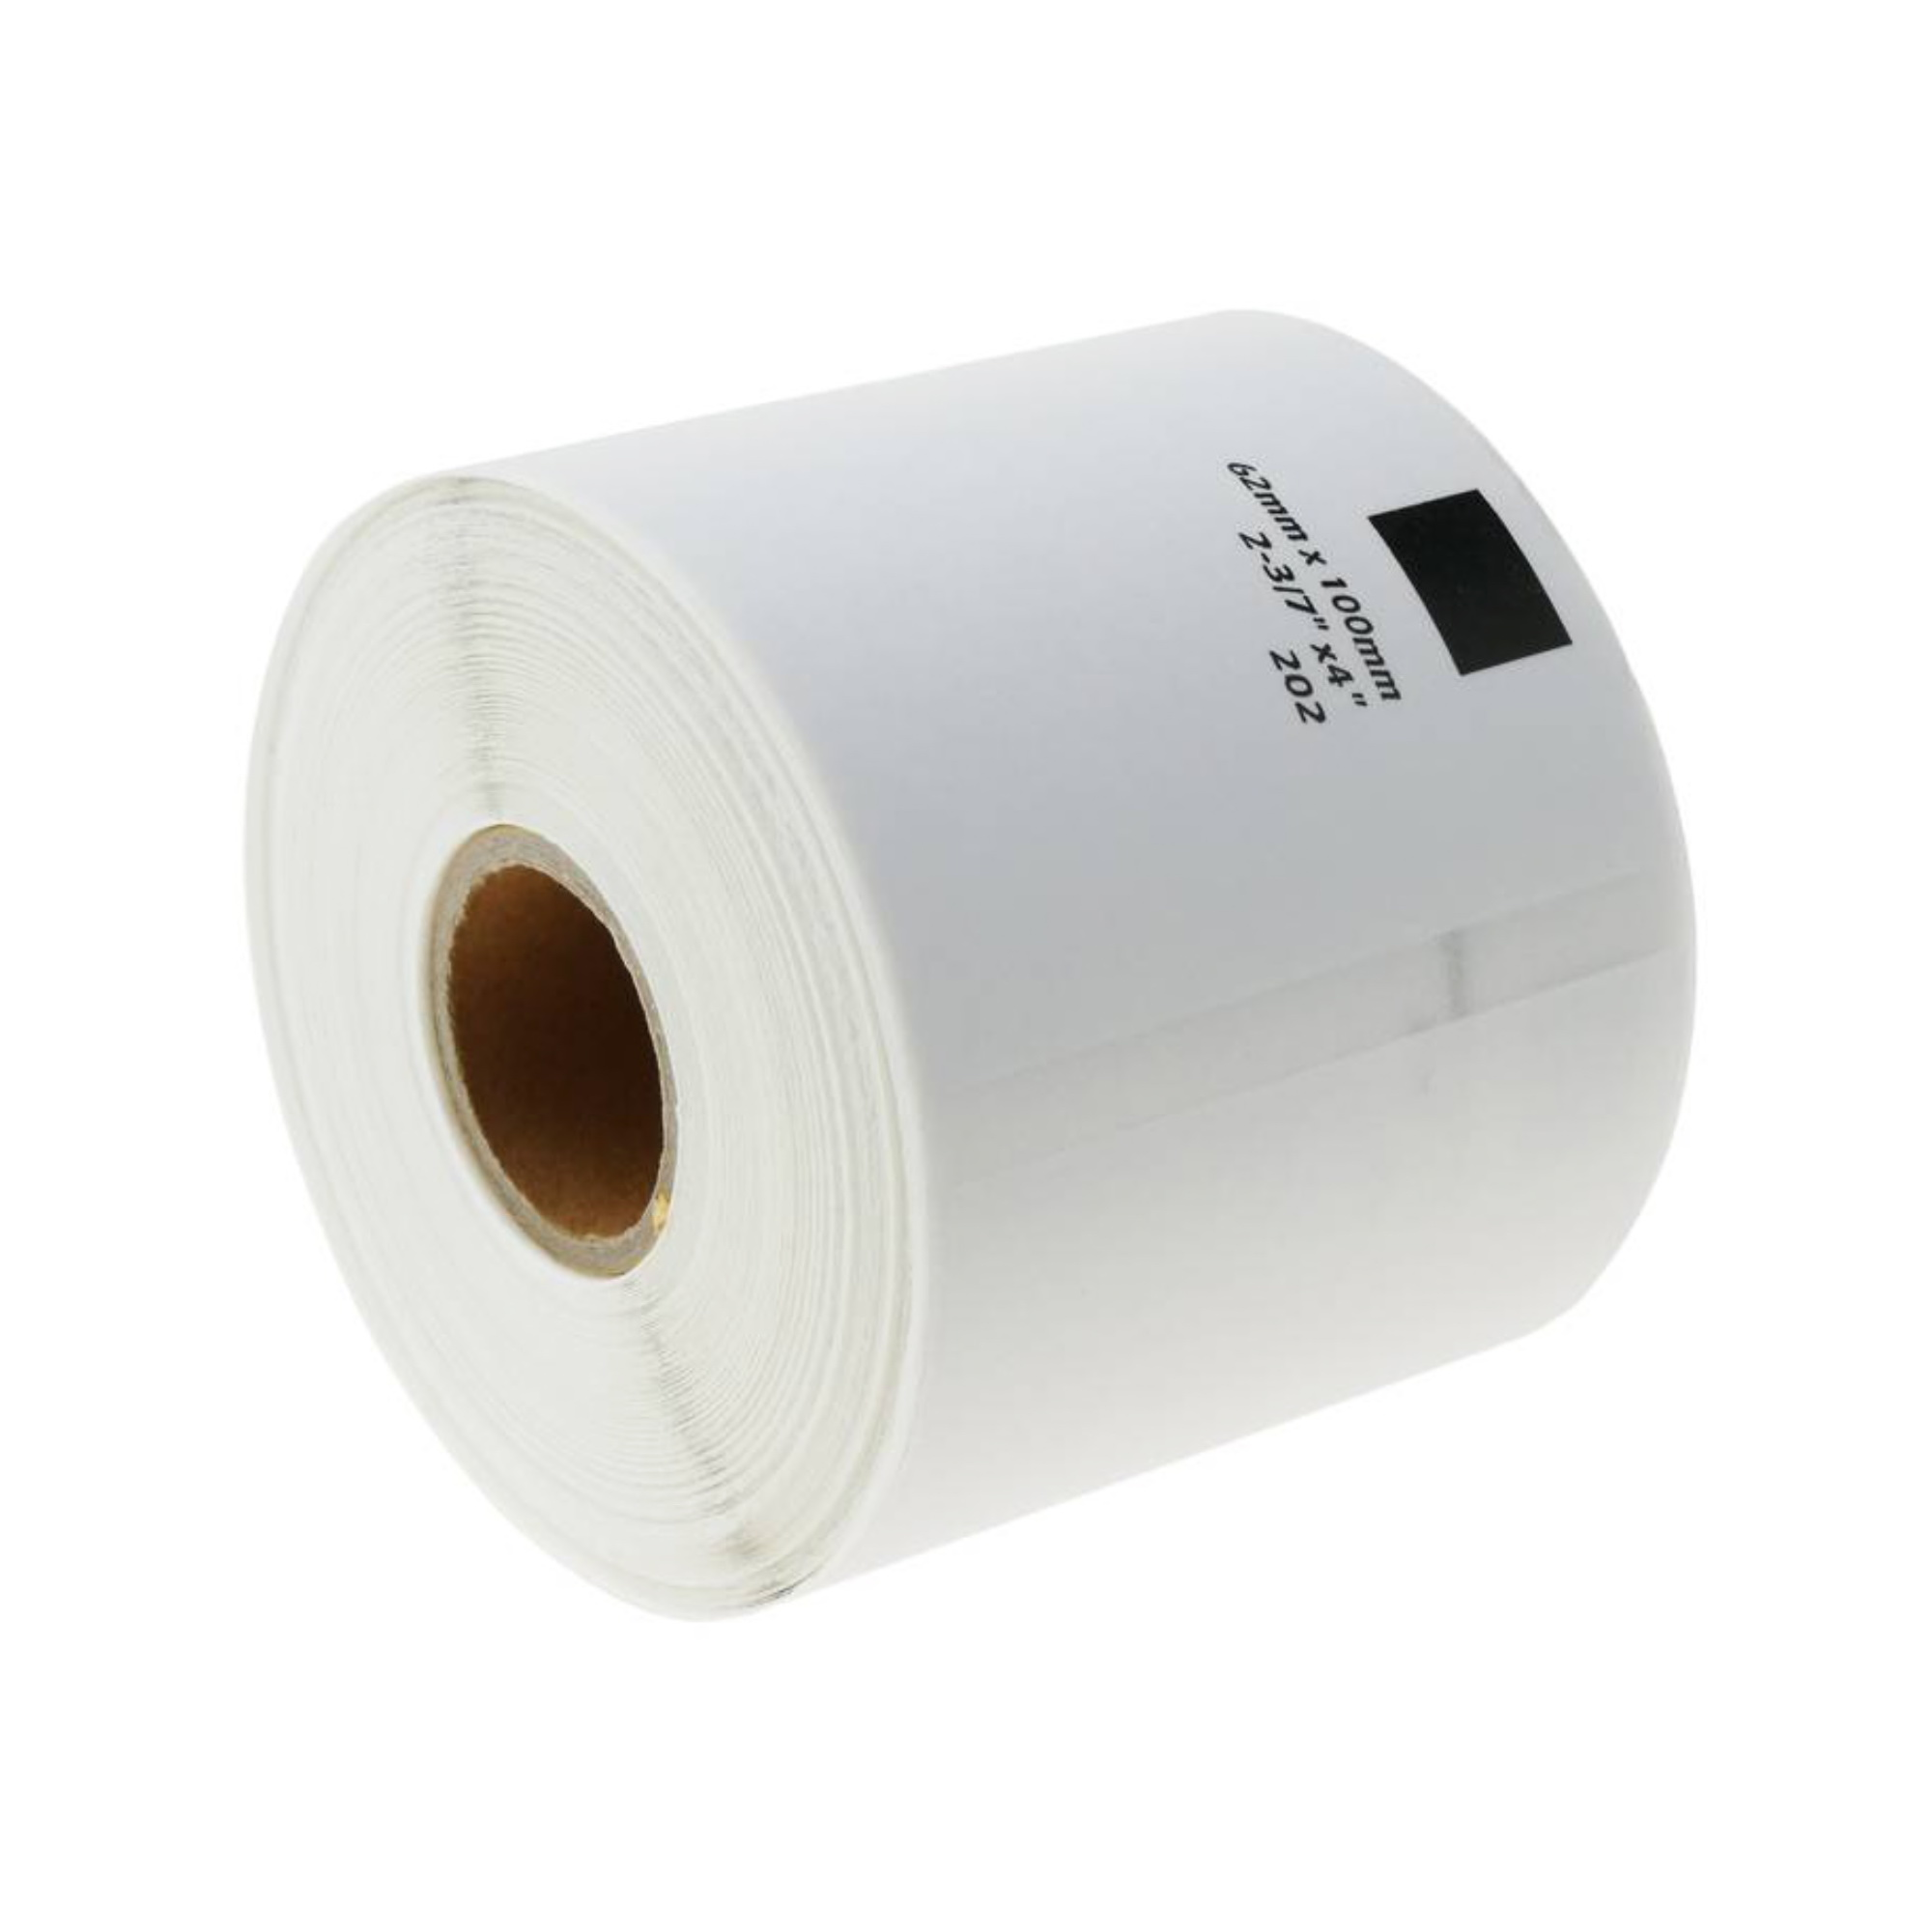 10 REFILL ROLLS DK11202 BROTHER COMPATIBLE SHIPPING LABELS 62x100mm